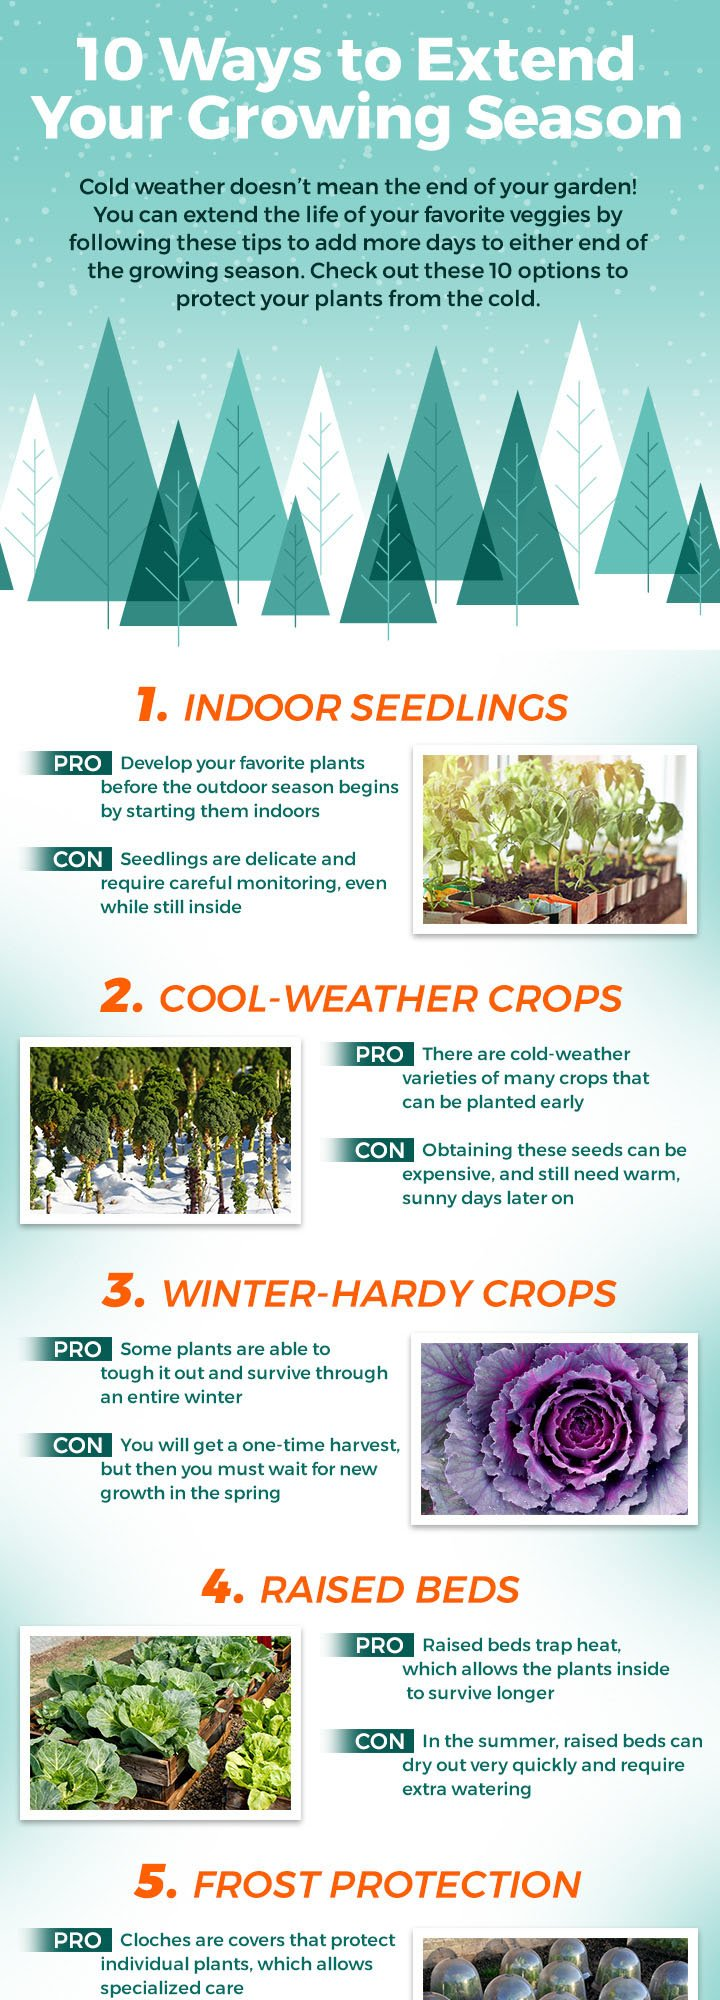 Extend Your Growing Season, part 1